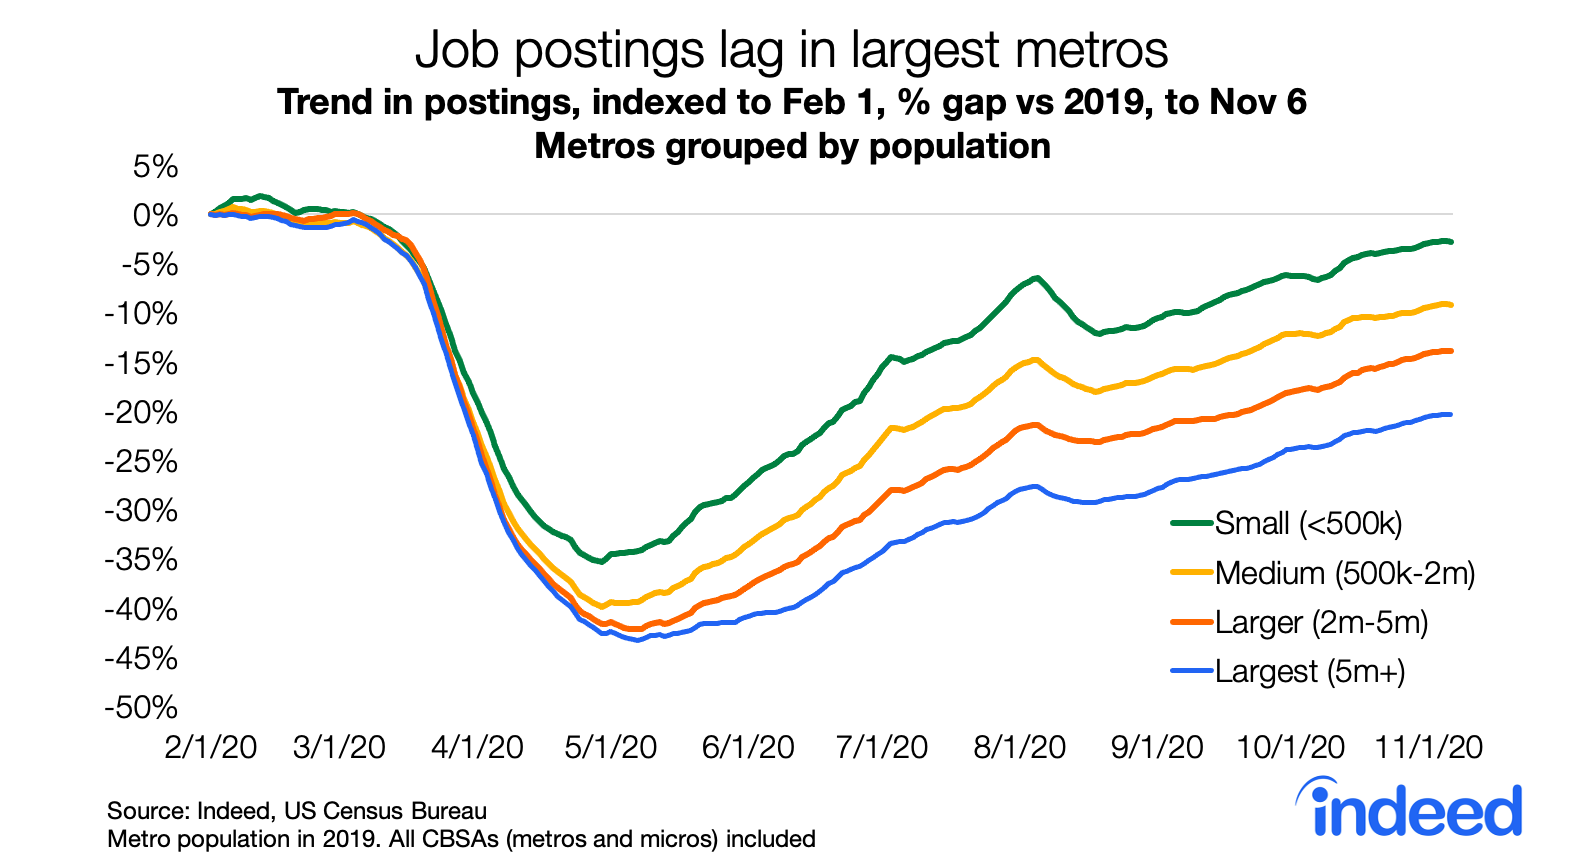 Line graph showing job postings lagging in largest metros in the united states